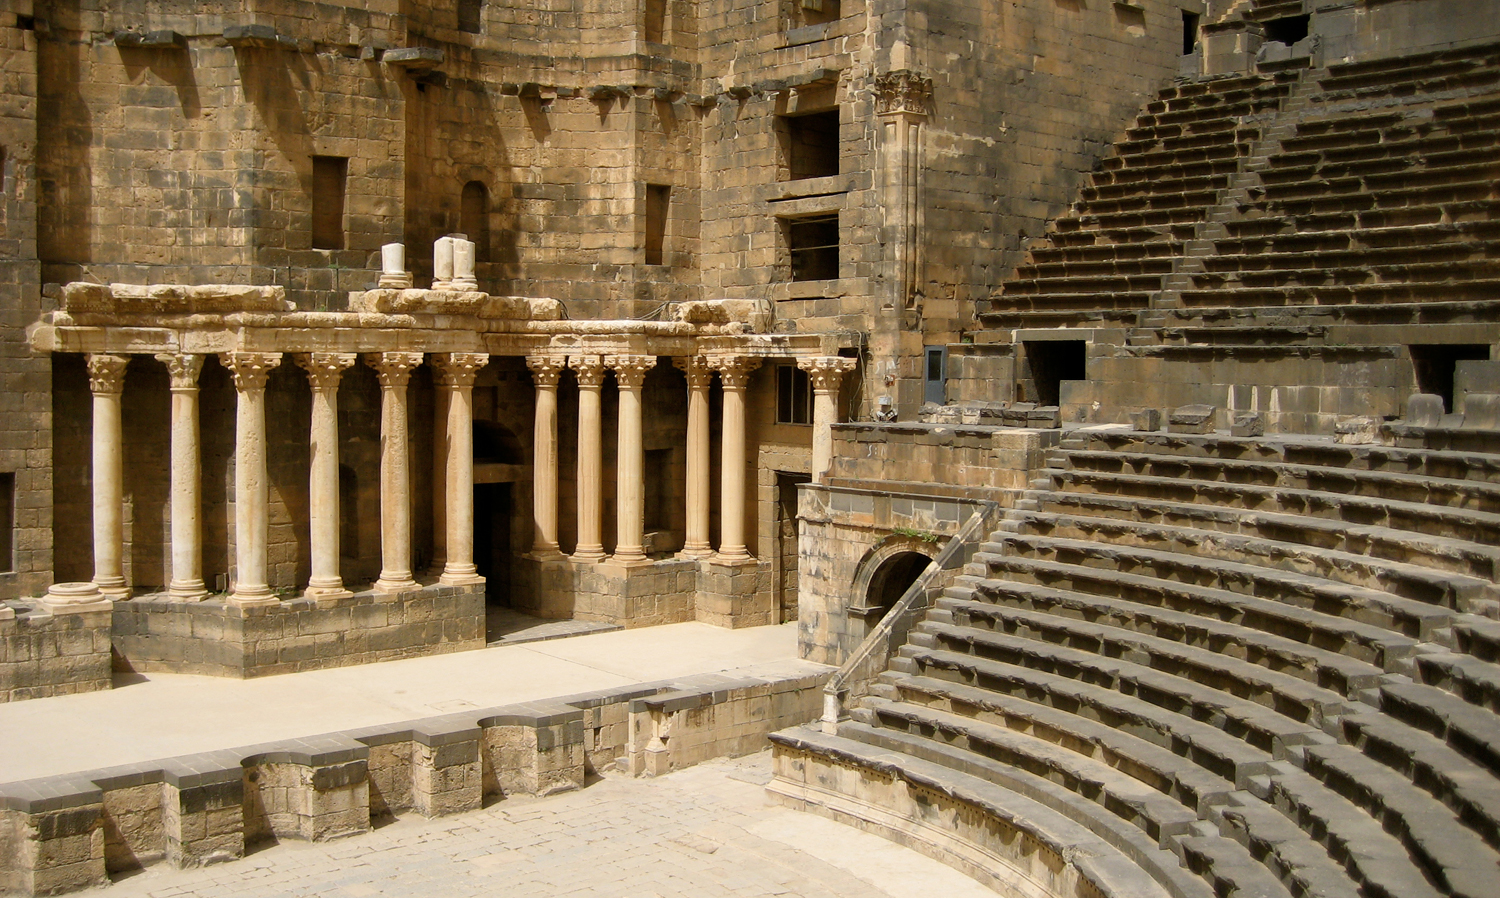 A-Roman-theater-in-Bosra-once-the-capital-of-the-Roman-province-of-Arabia-2009